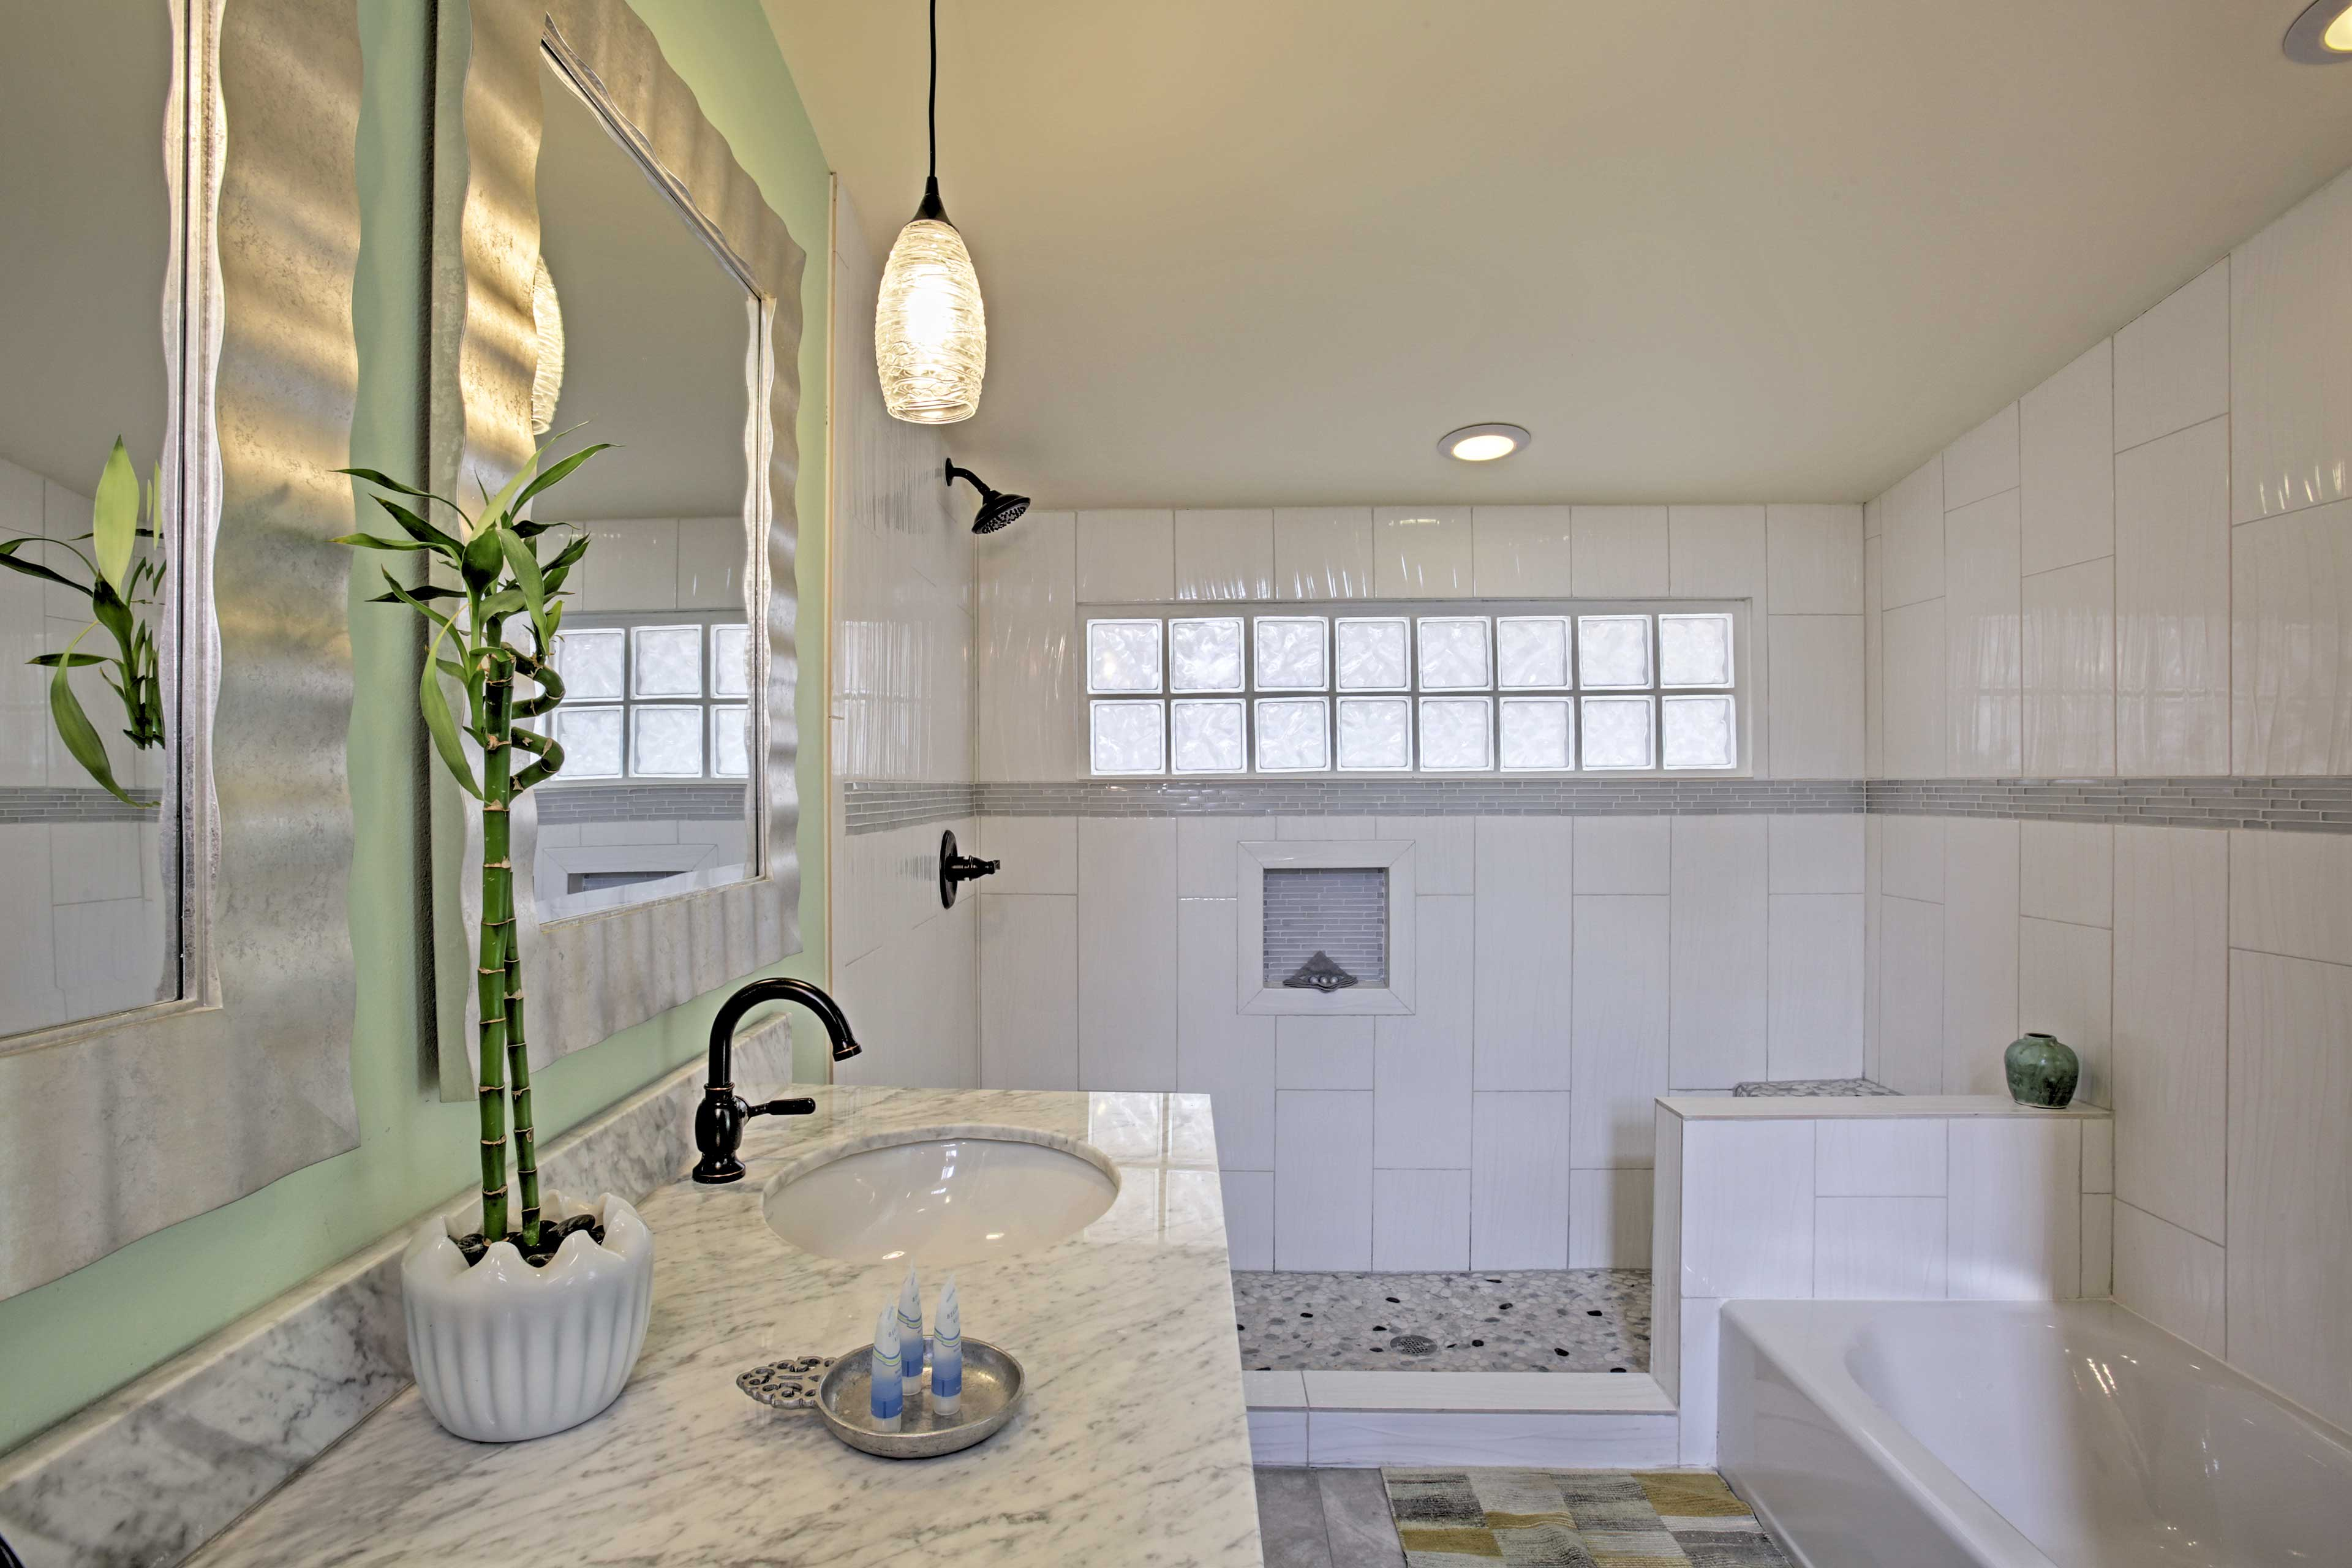 Take a relaxing soak in the bathtub before retiring to the loft or bedroom.